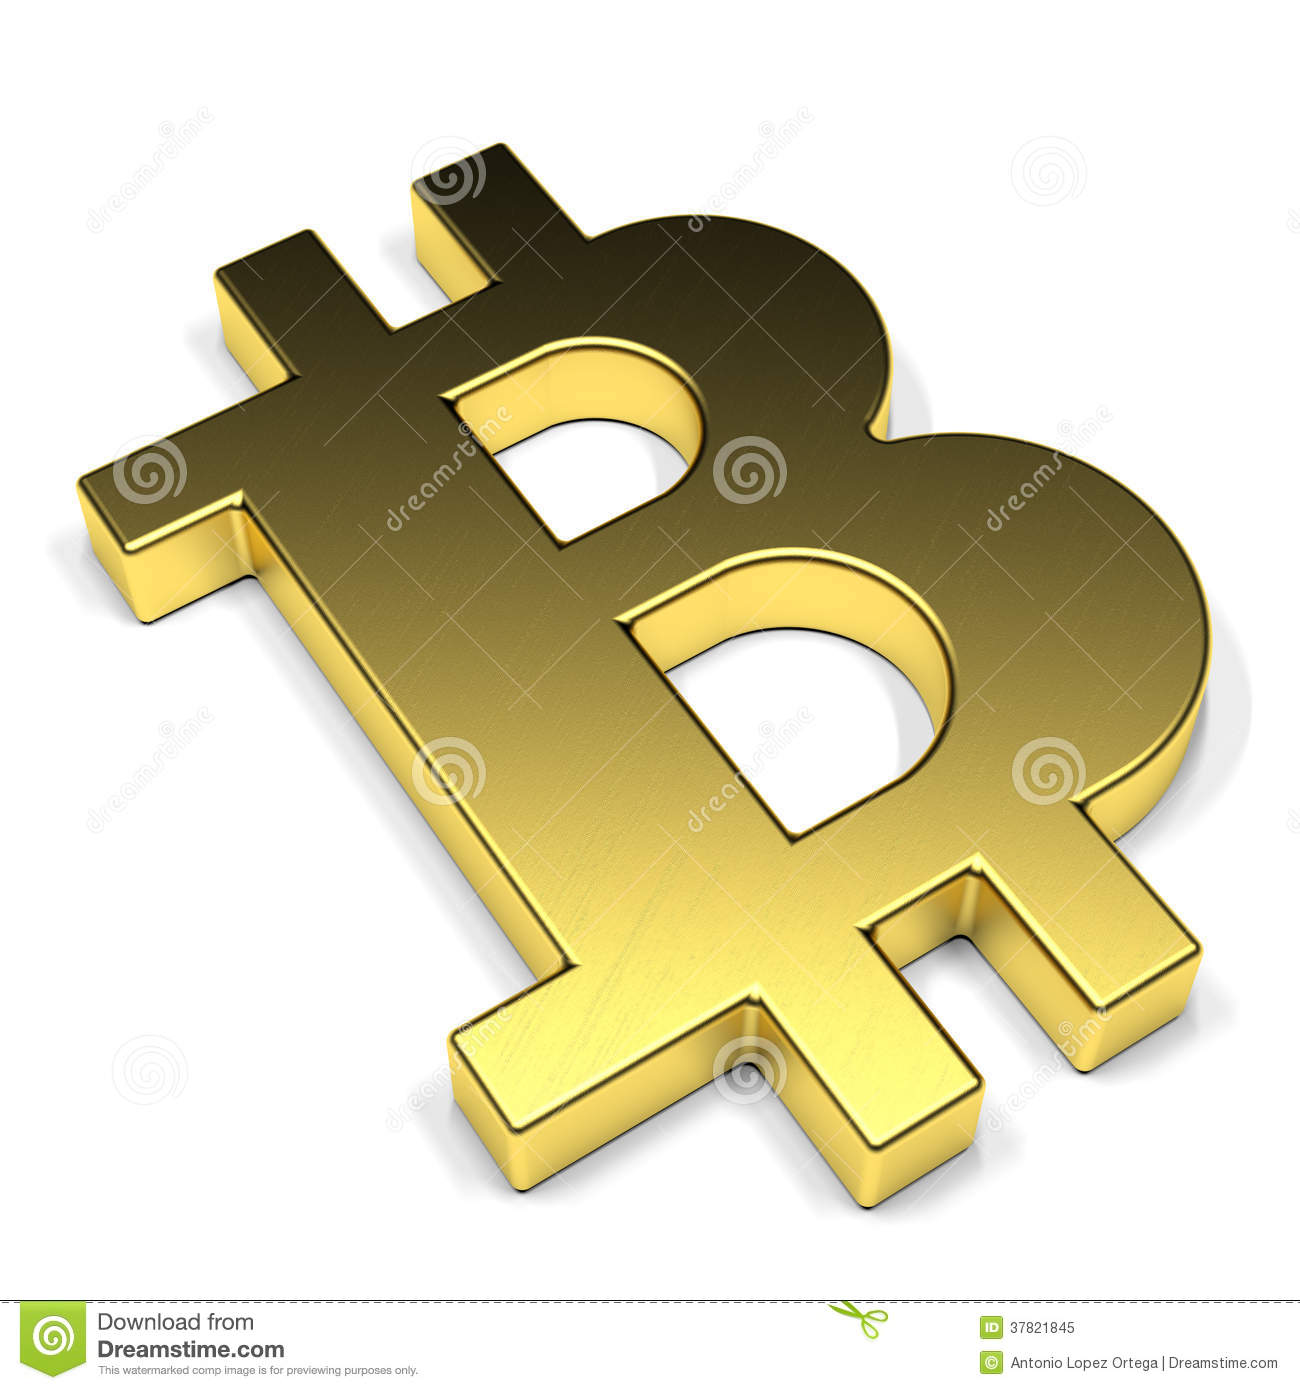 Real Time Stock Quotes Ticker: Bitcoin Machine Winnipeg